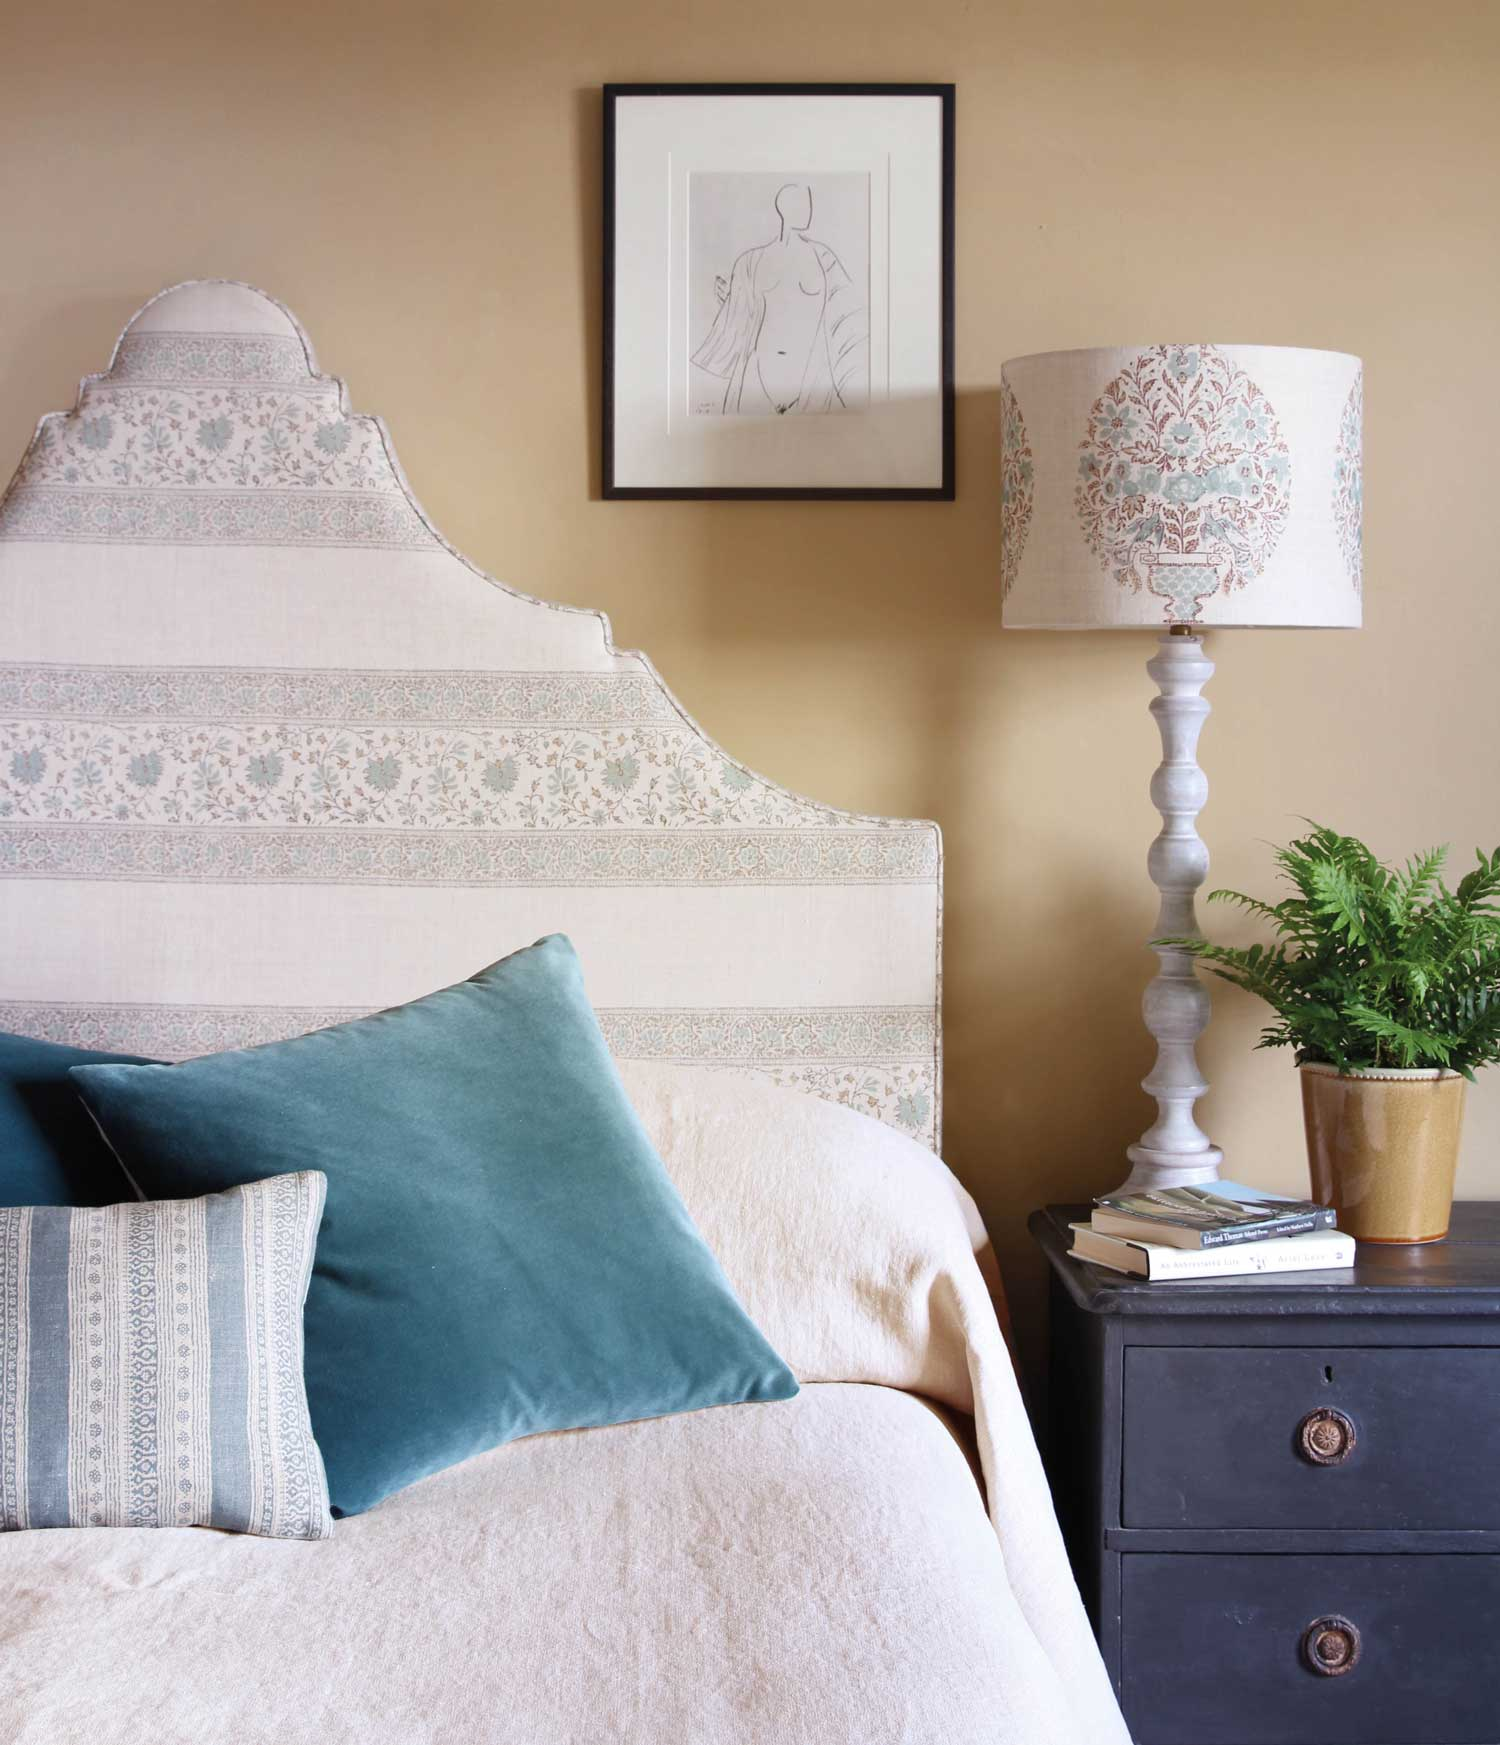 Freya-Aqua-Headboard-and-Nikita-Aqua-Shade